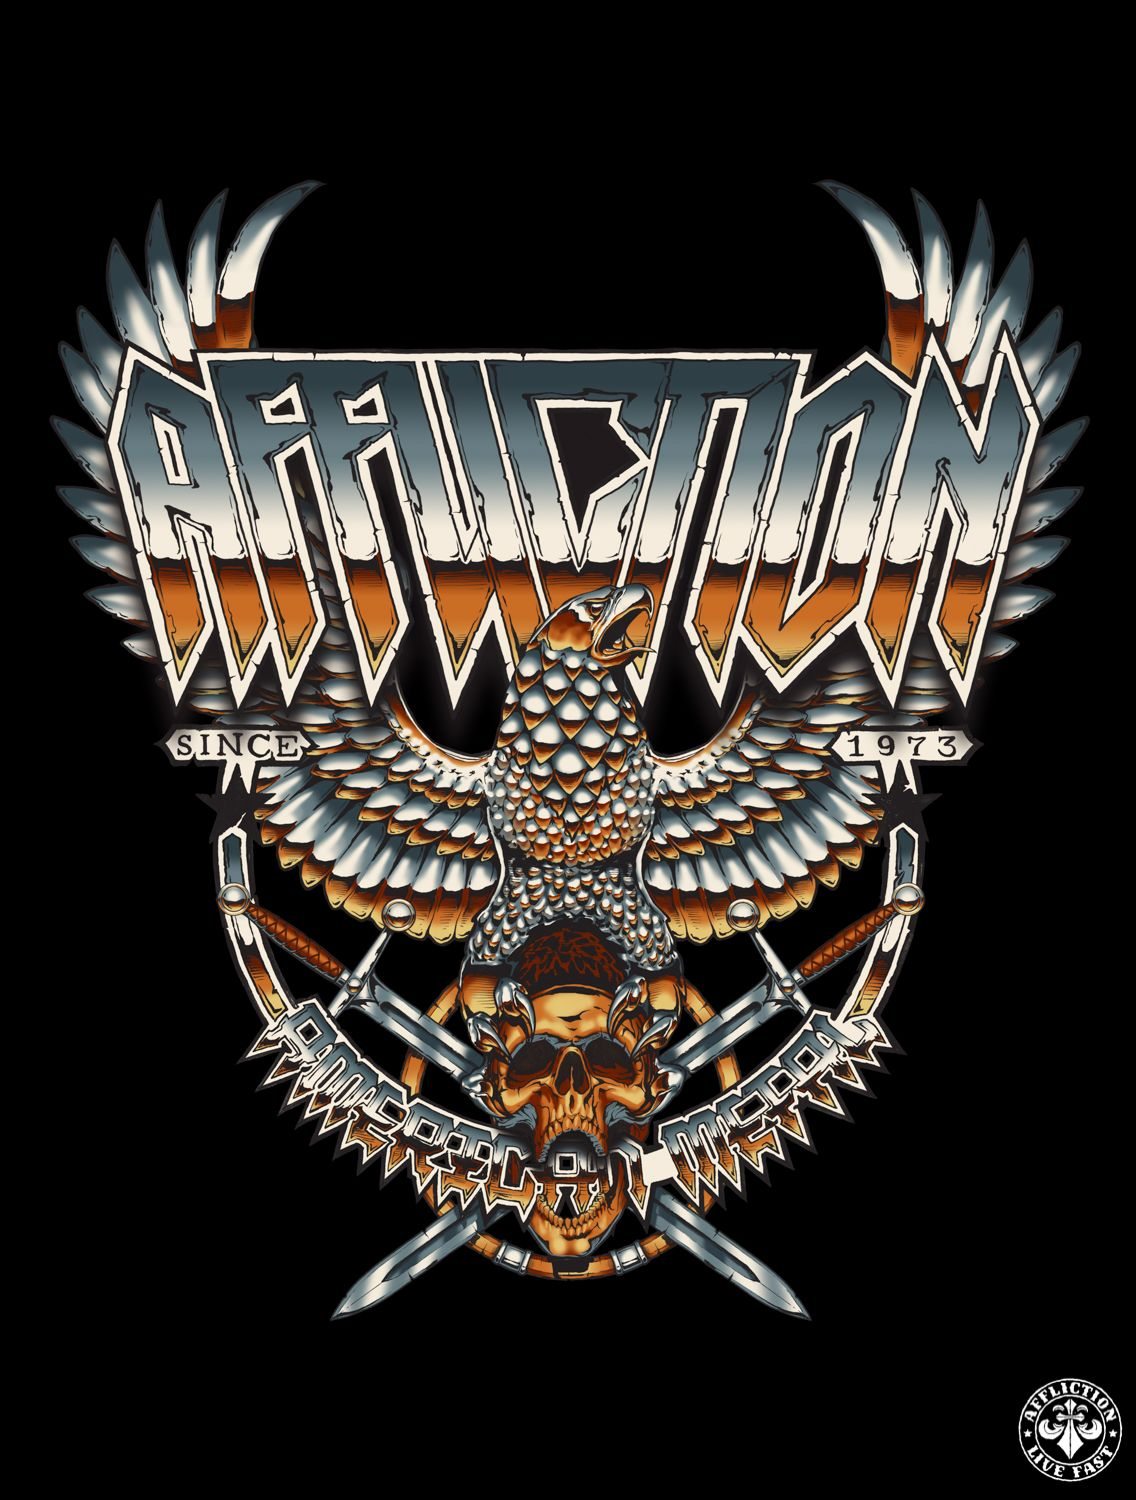 Metal T Shirt Design   Affliction Metal Storm Designed To Look Like An Old 80s Heavy